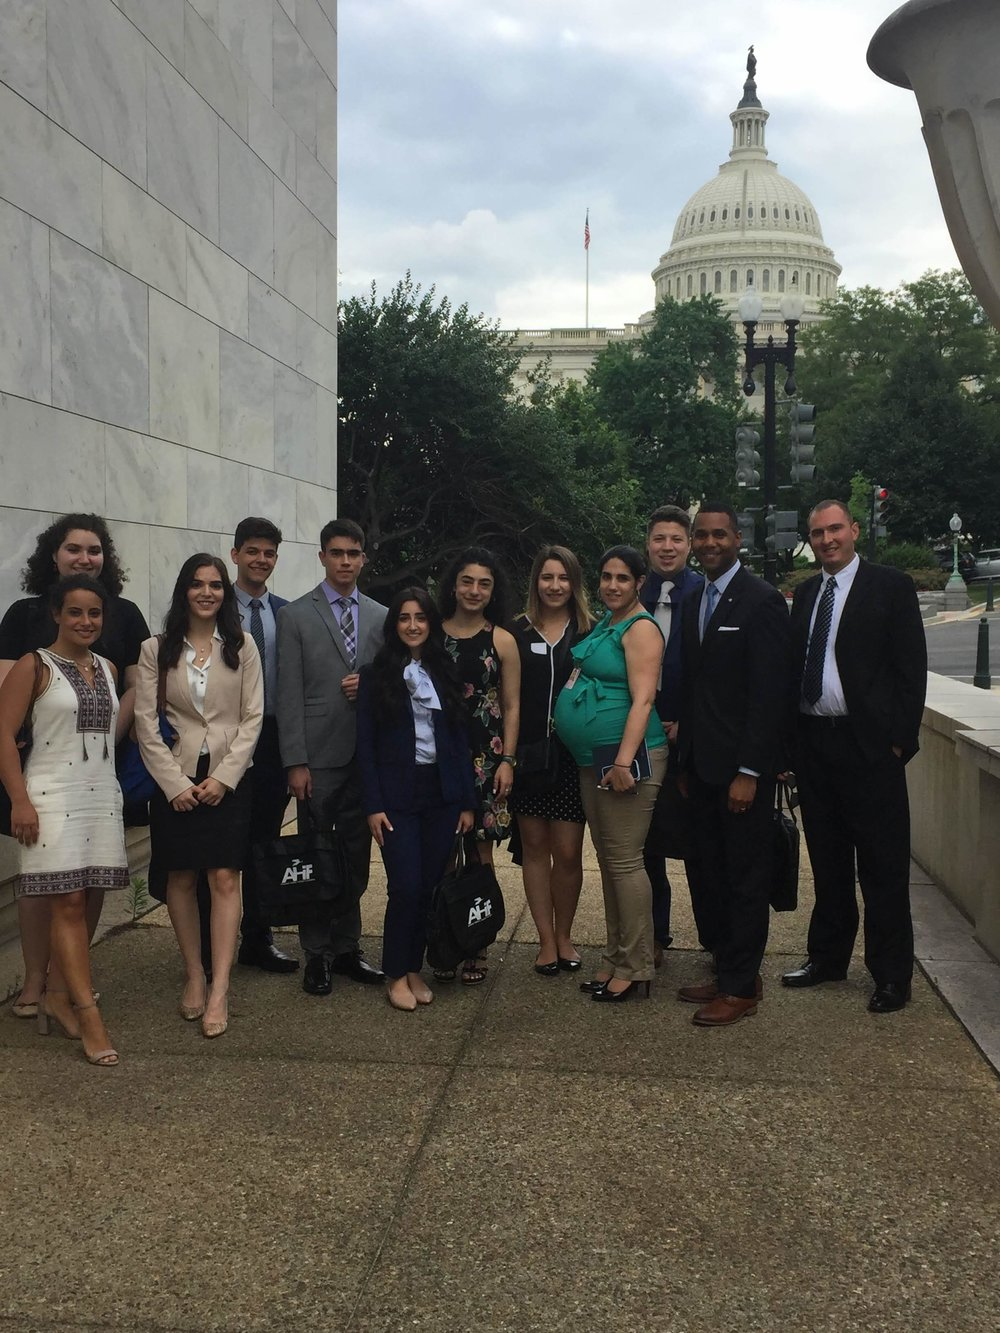 AHI student trip participants standing outside U.S. Capitol Building with Shayne Woods, legislative assistant for Rep. Gus Bilirakis (R-FL) & Christina Parisi, legislative director for Rep. Carolyn Maloney (D-NY), Hellenic Caucus co-chairs.